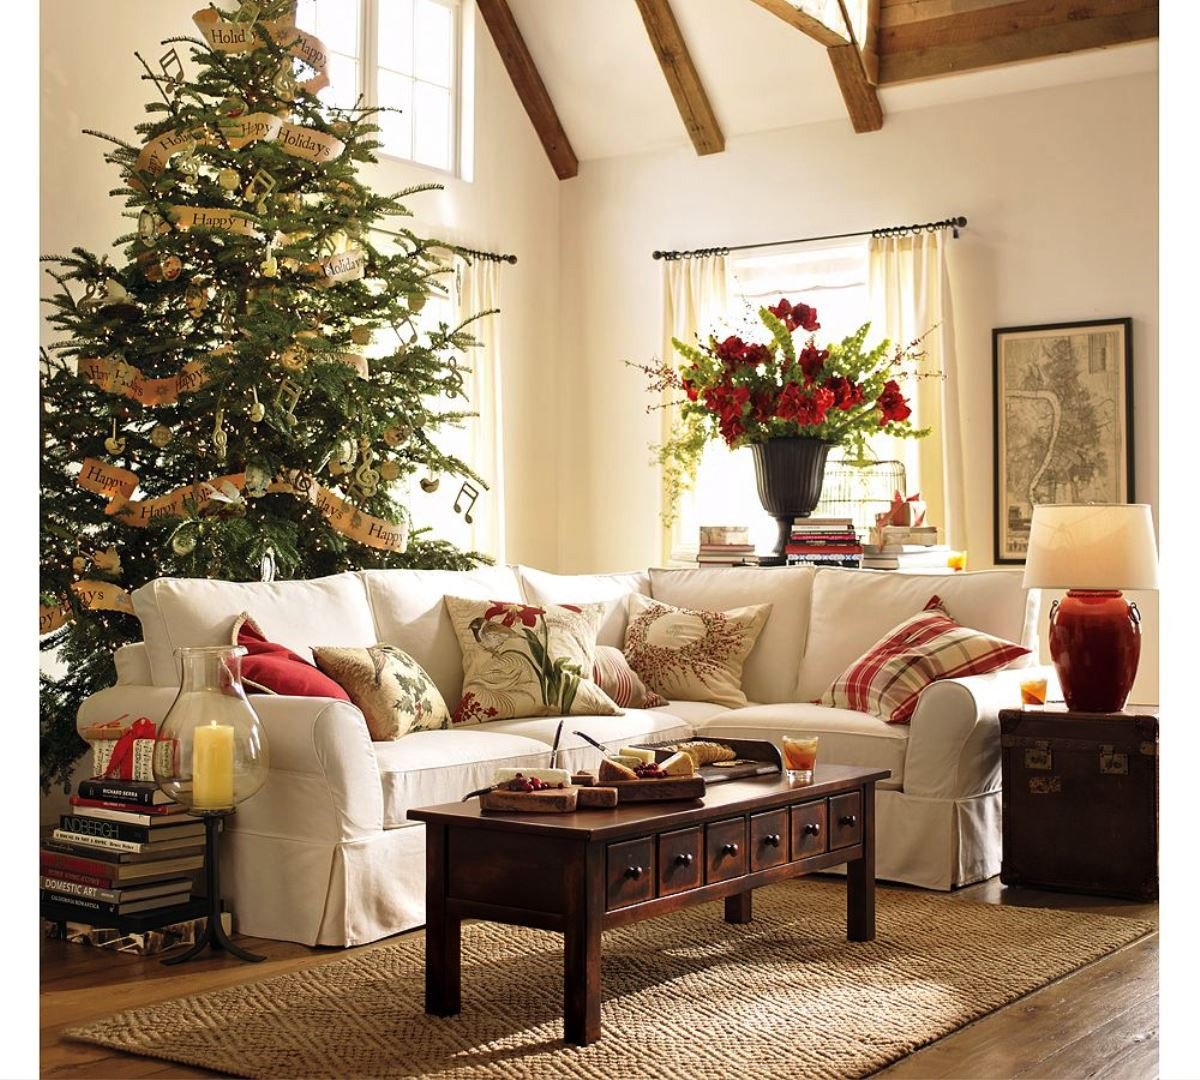 Modern Living Room Decorating Ideas Christmas 50 Stunning Christmas Decorations for Your Living Room